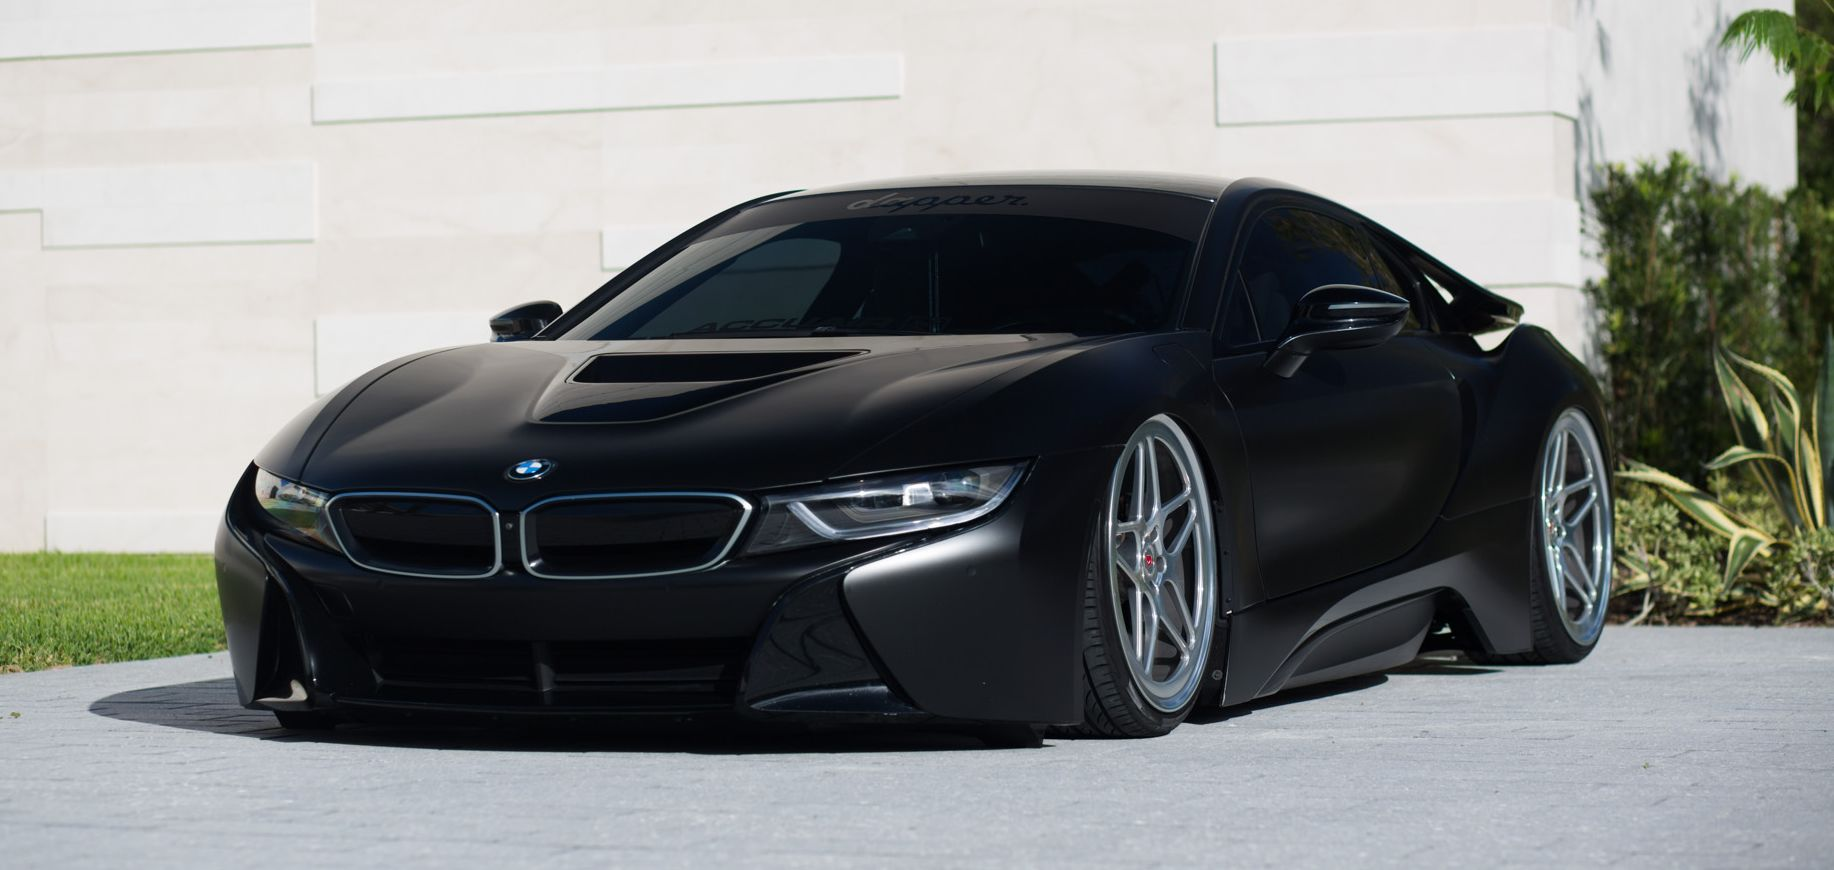 BMW-i8-Vossen-Forged-LC-104.jpg